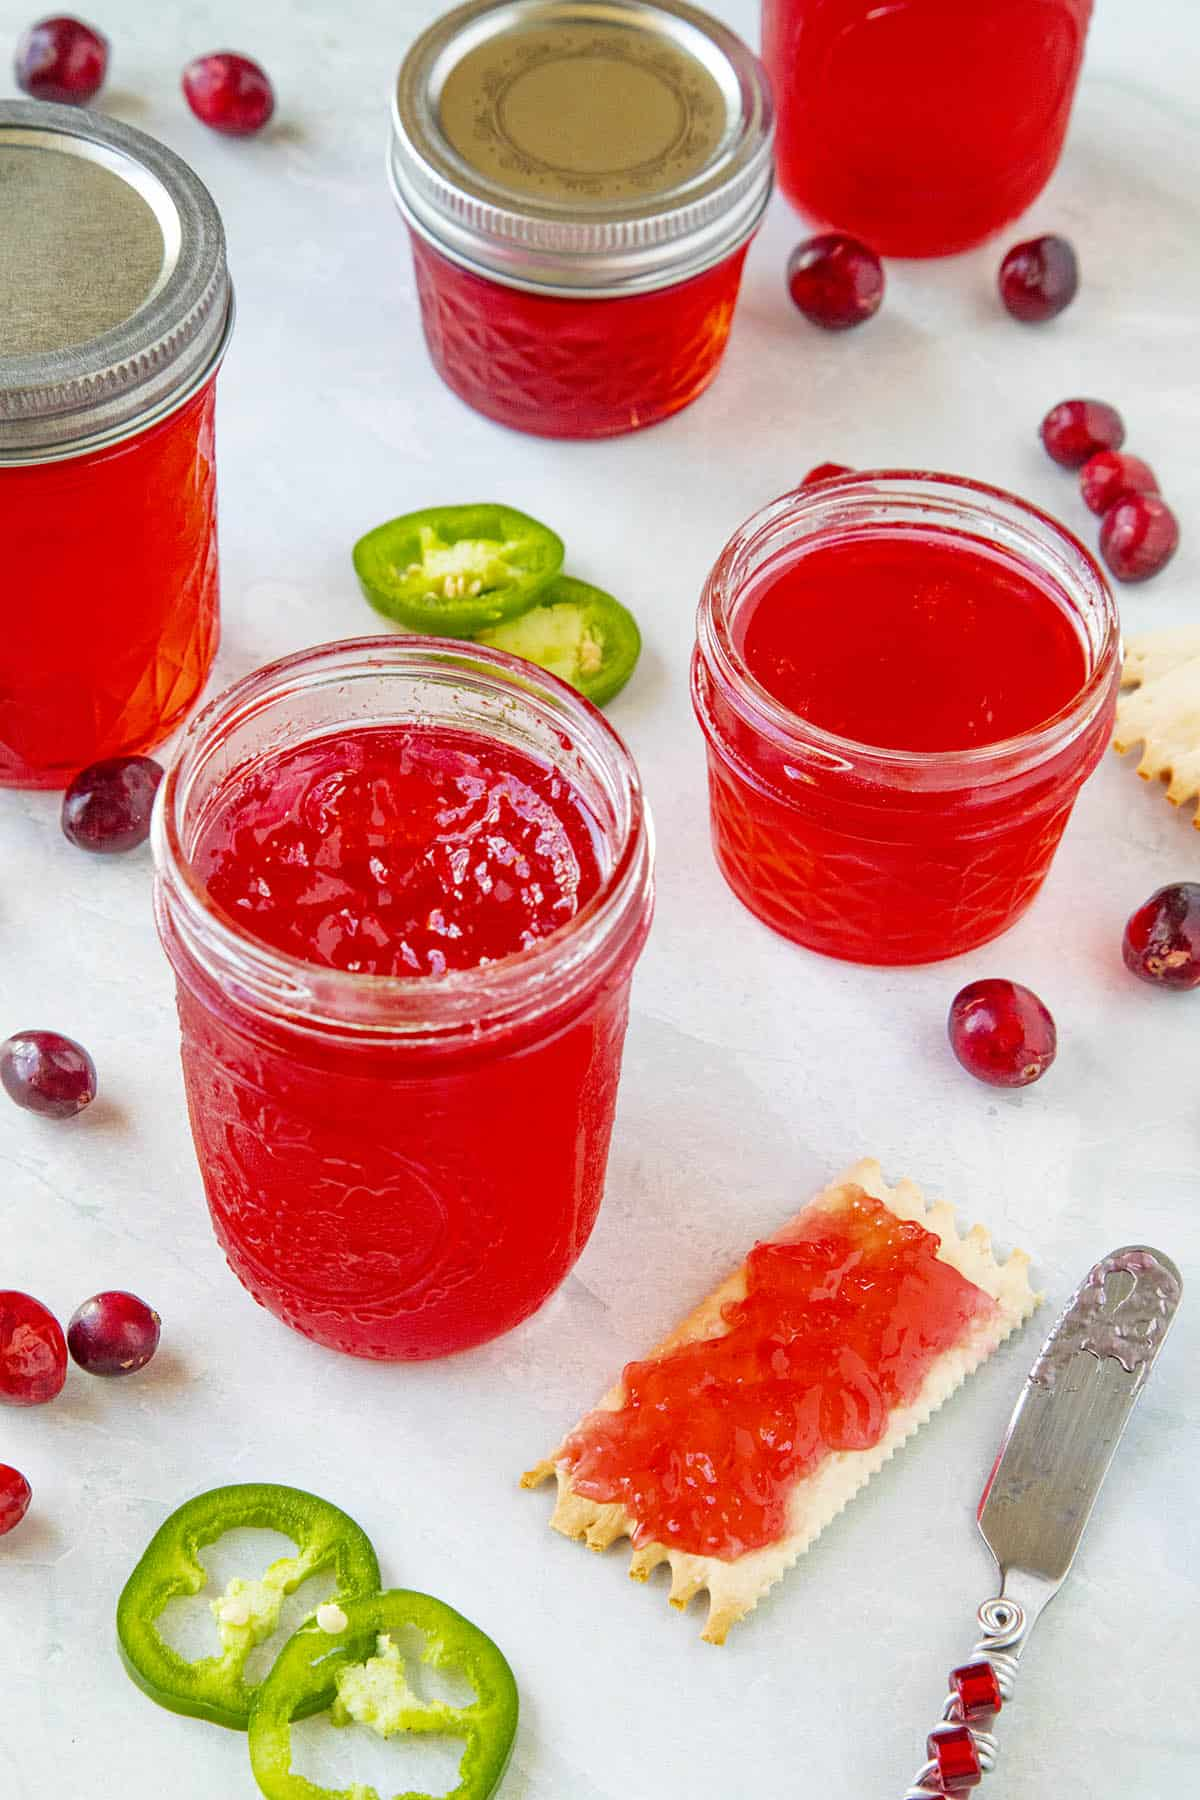 Cranberry Jalapeno Jelly in jars and spread onto a cracker